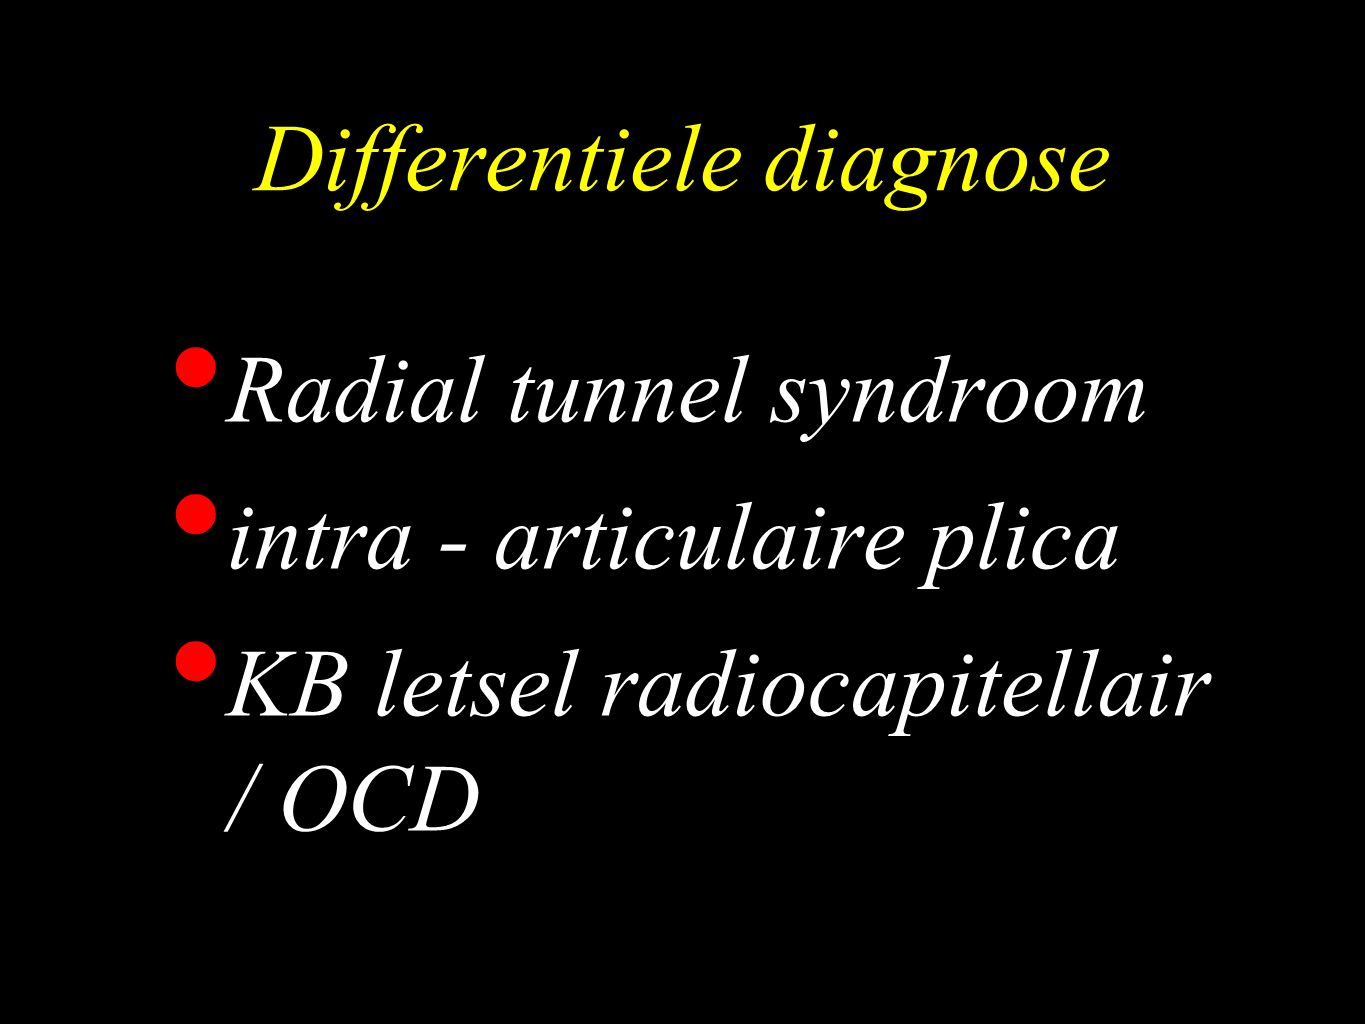 Differentiele diagnose